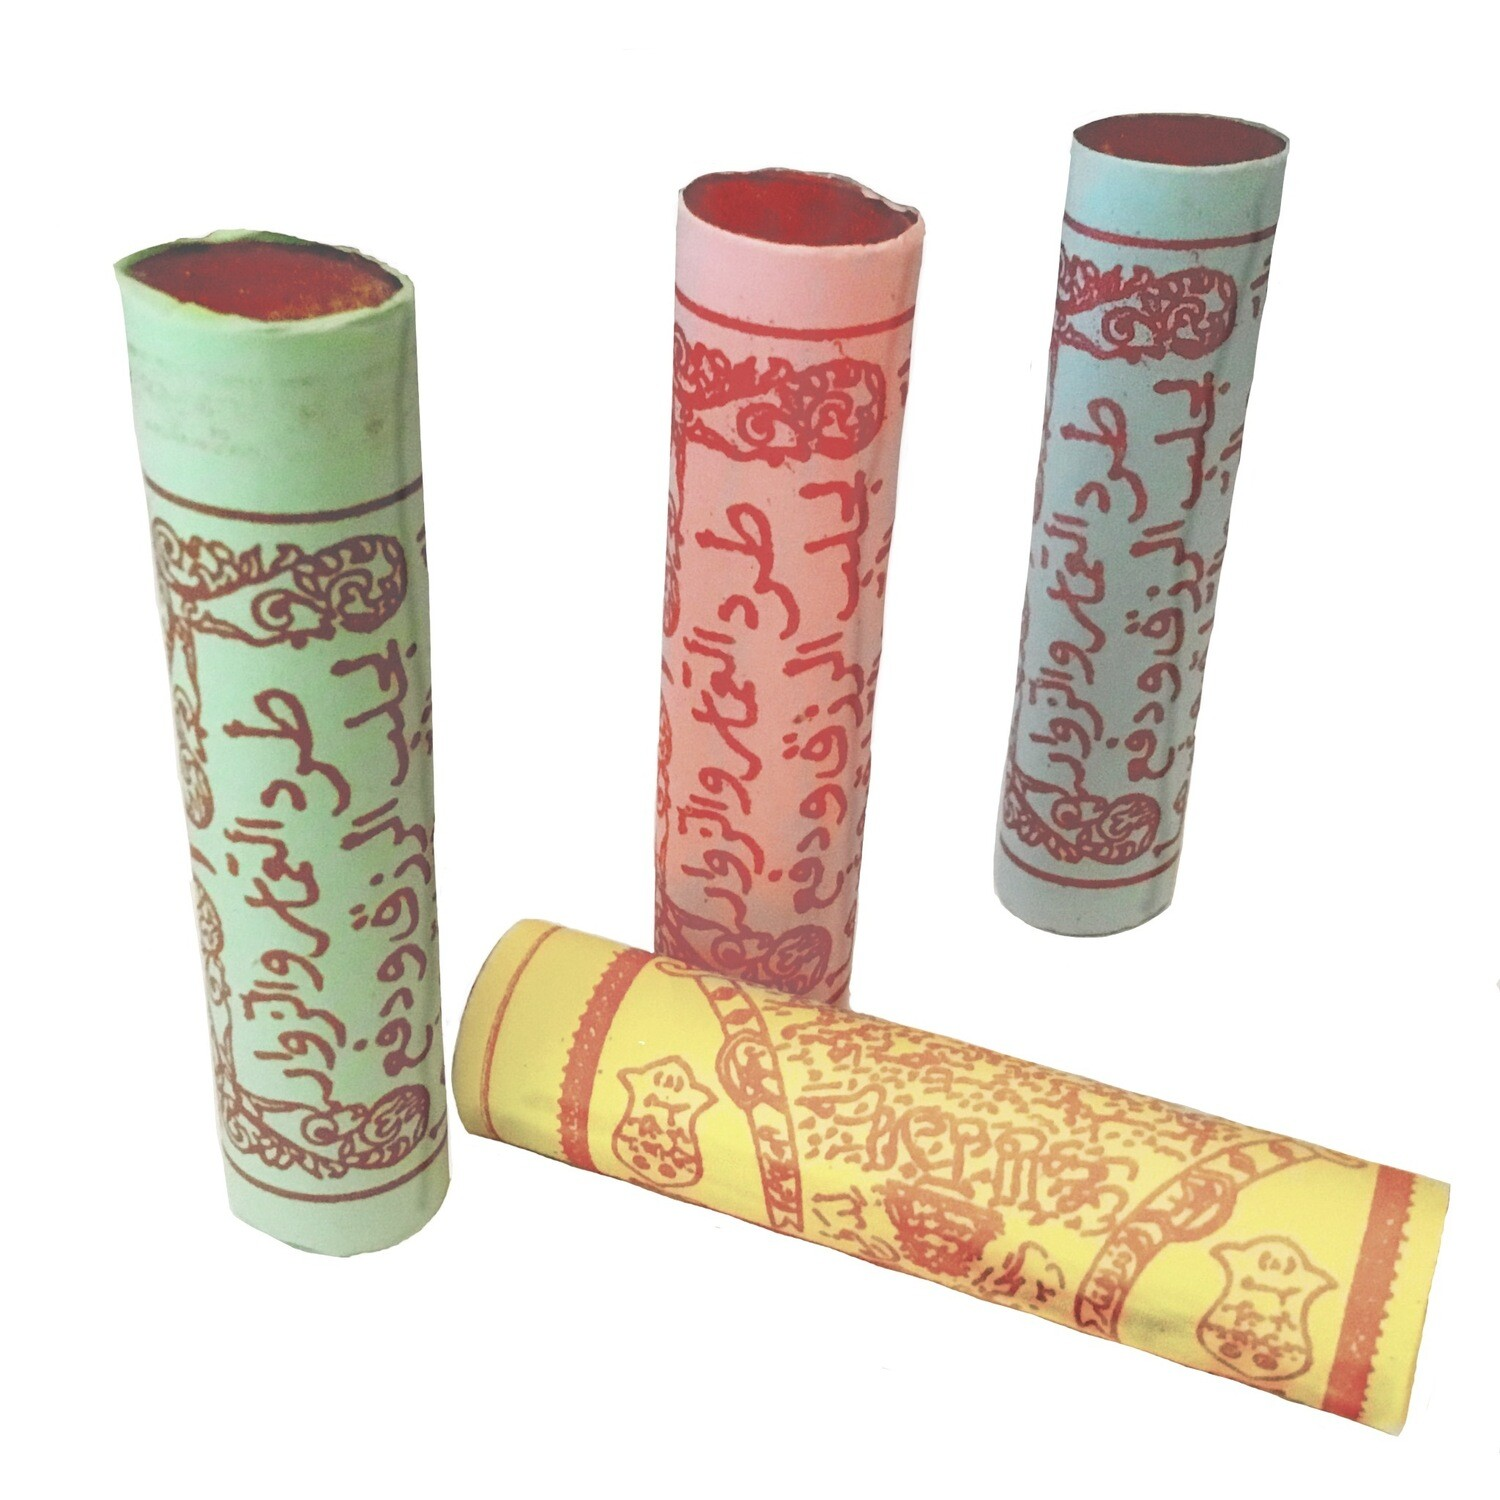 Tubular Talismanic scroll empowered with Islamic Magic for Protection and Evasion.